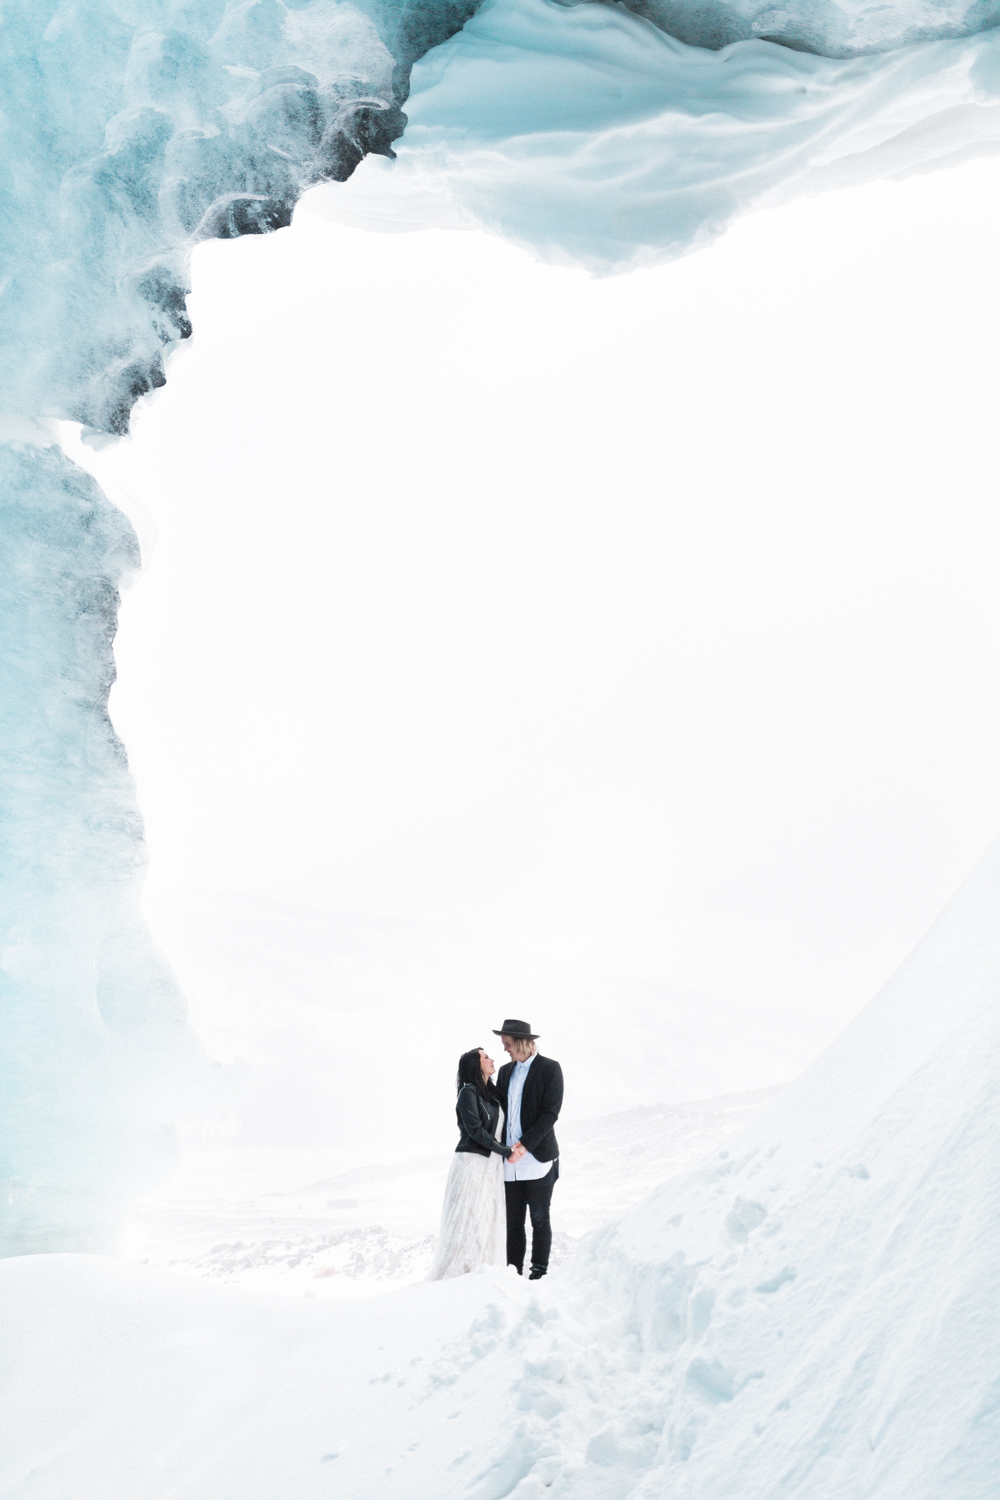 Jasper-elopement-wedding-photography-35.jpg